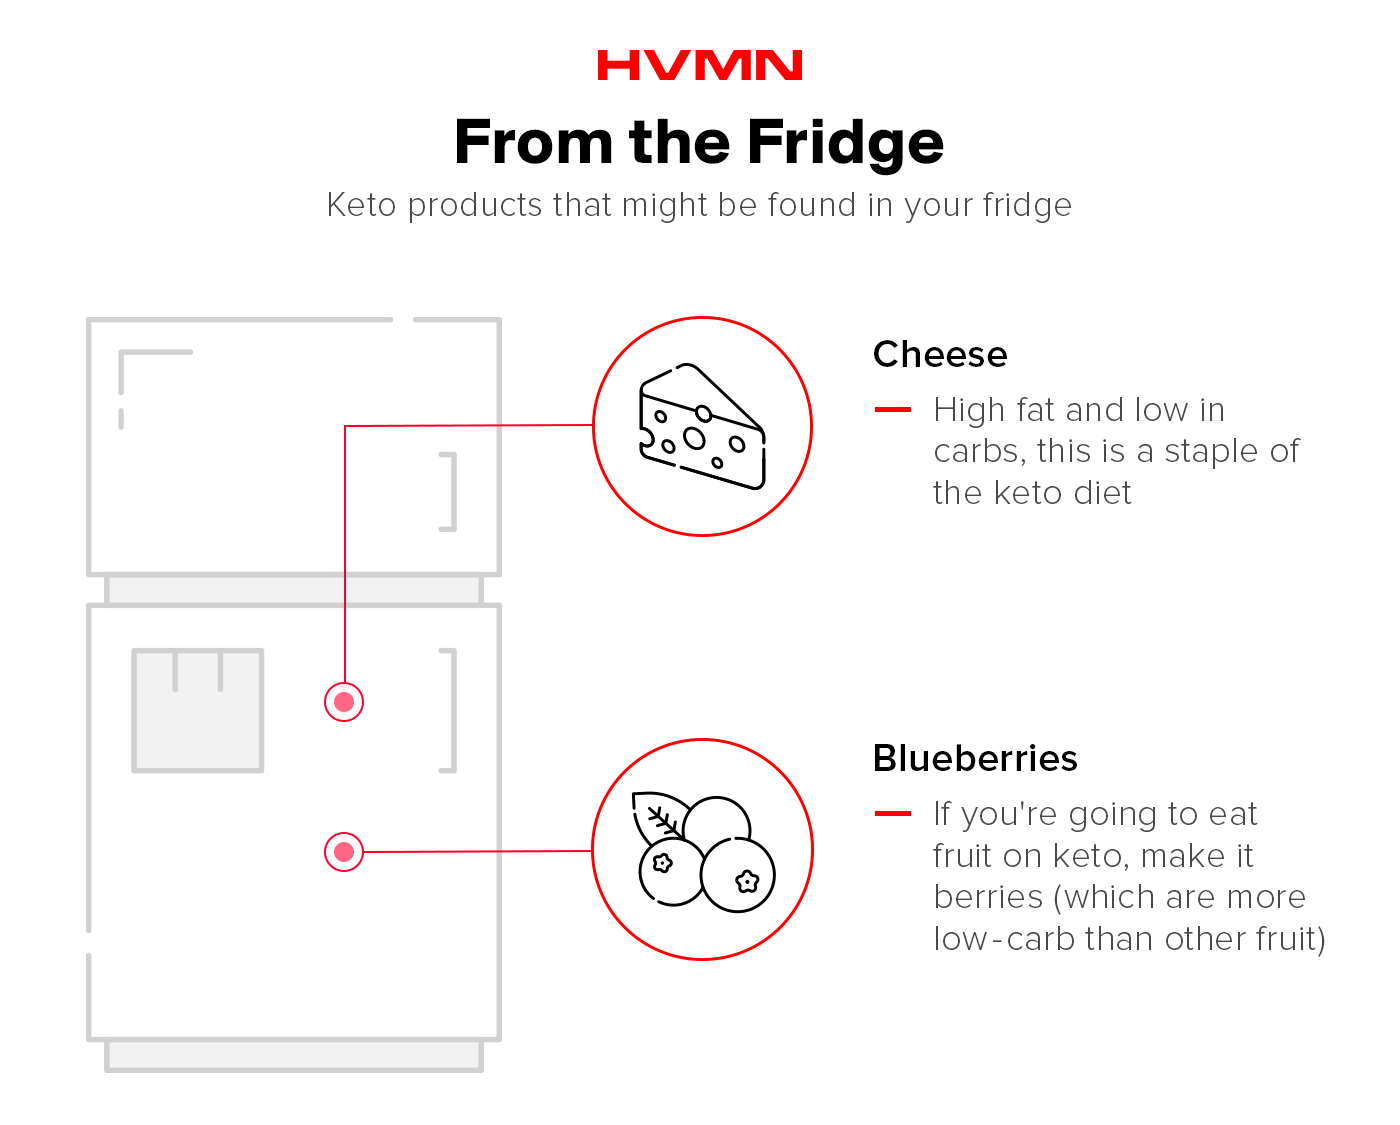 An illustration of a fridge, with cheese and blueberries, showing which keto items you might find in your fridge